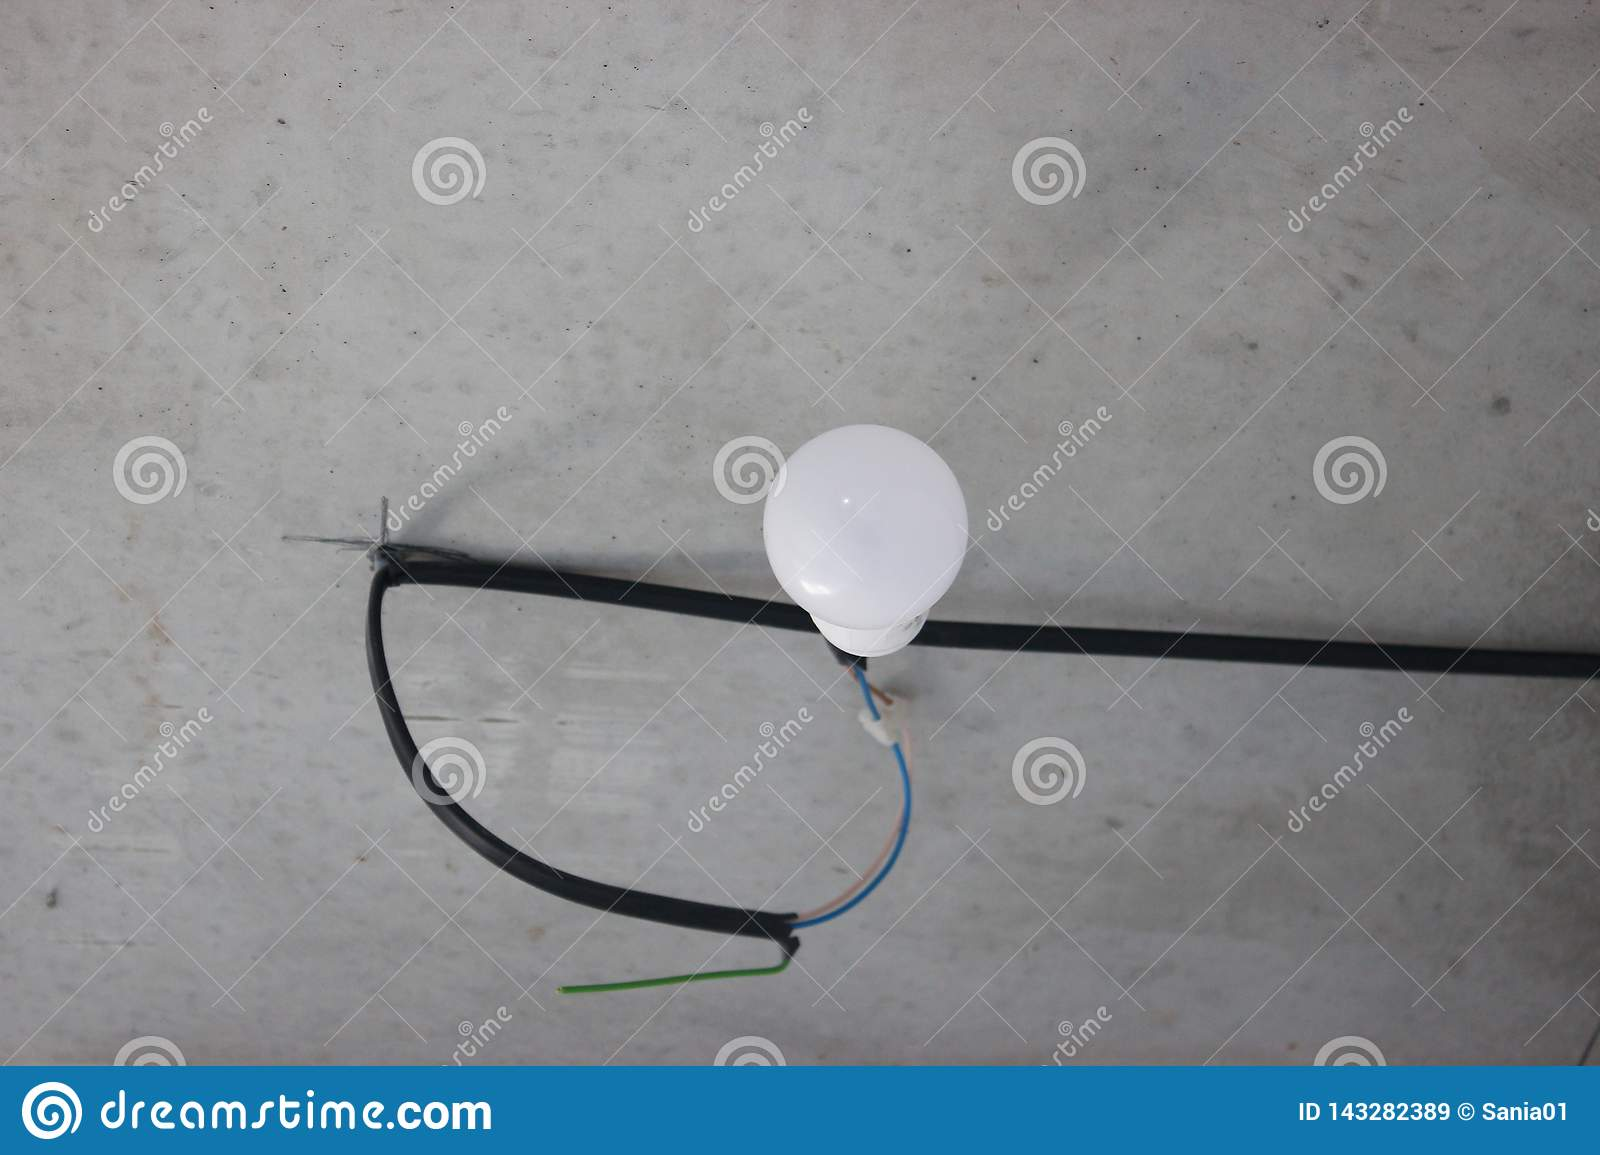 colorful wires sticking out of wall, repair the apartment, house or office  electrical  wiring  light bulb and switch on the background of gray concrete wall